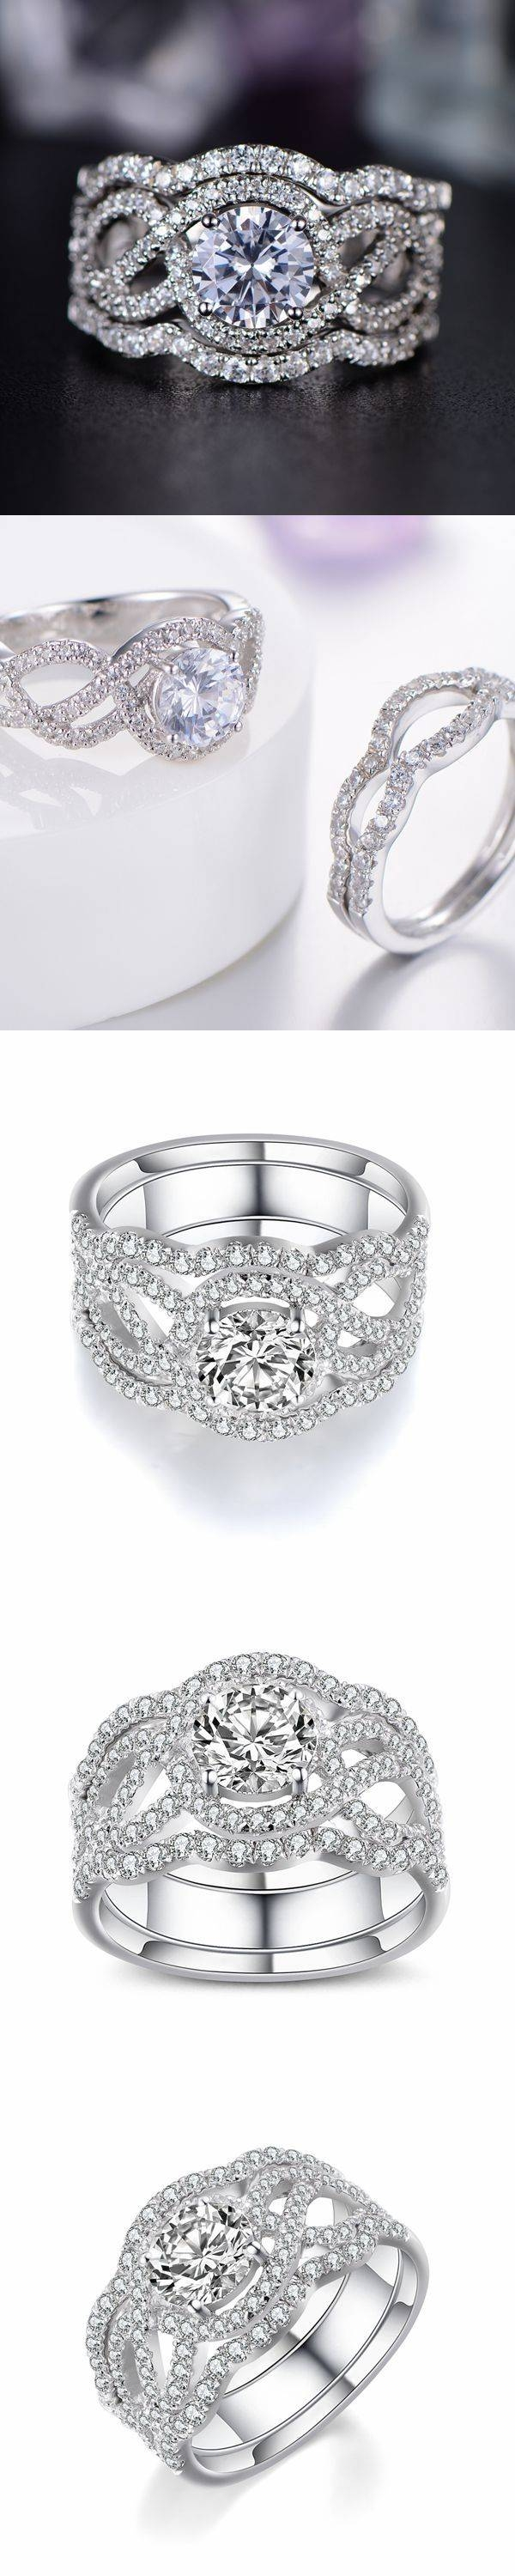 Best 25+ White Sapphire Rings Ideas On Pinterest | White Sapphire Throughout Most Recently Released Horizon Wedding Bands (View 10 of 15)